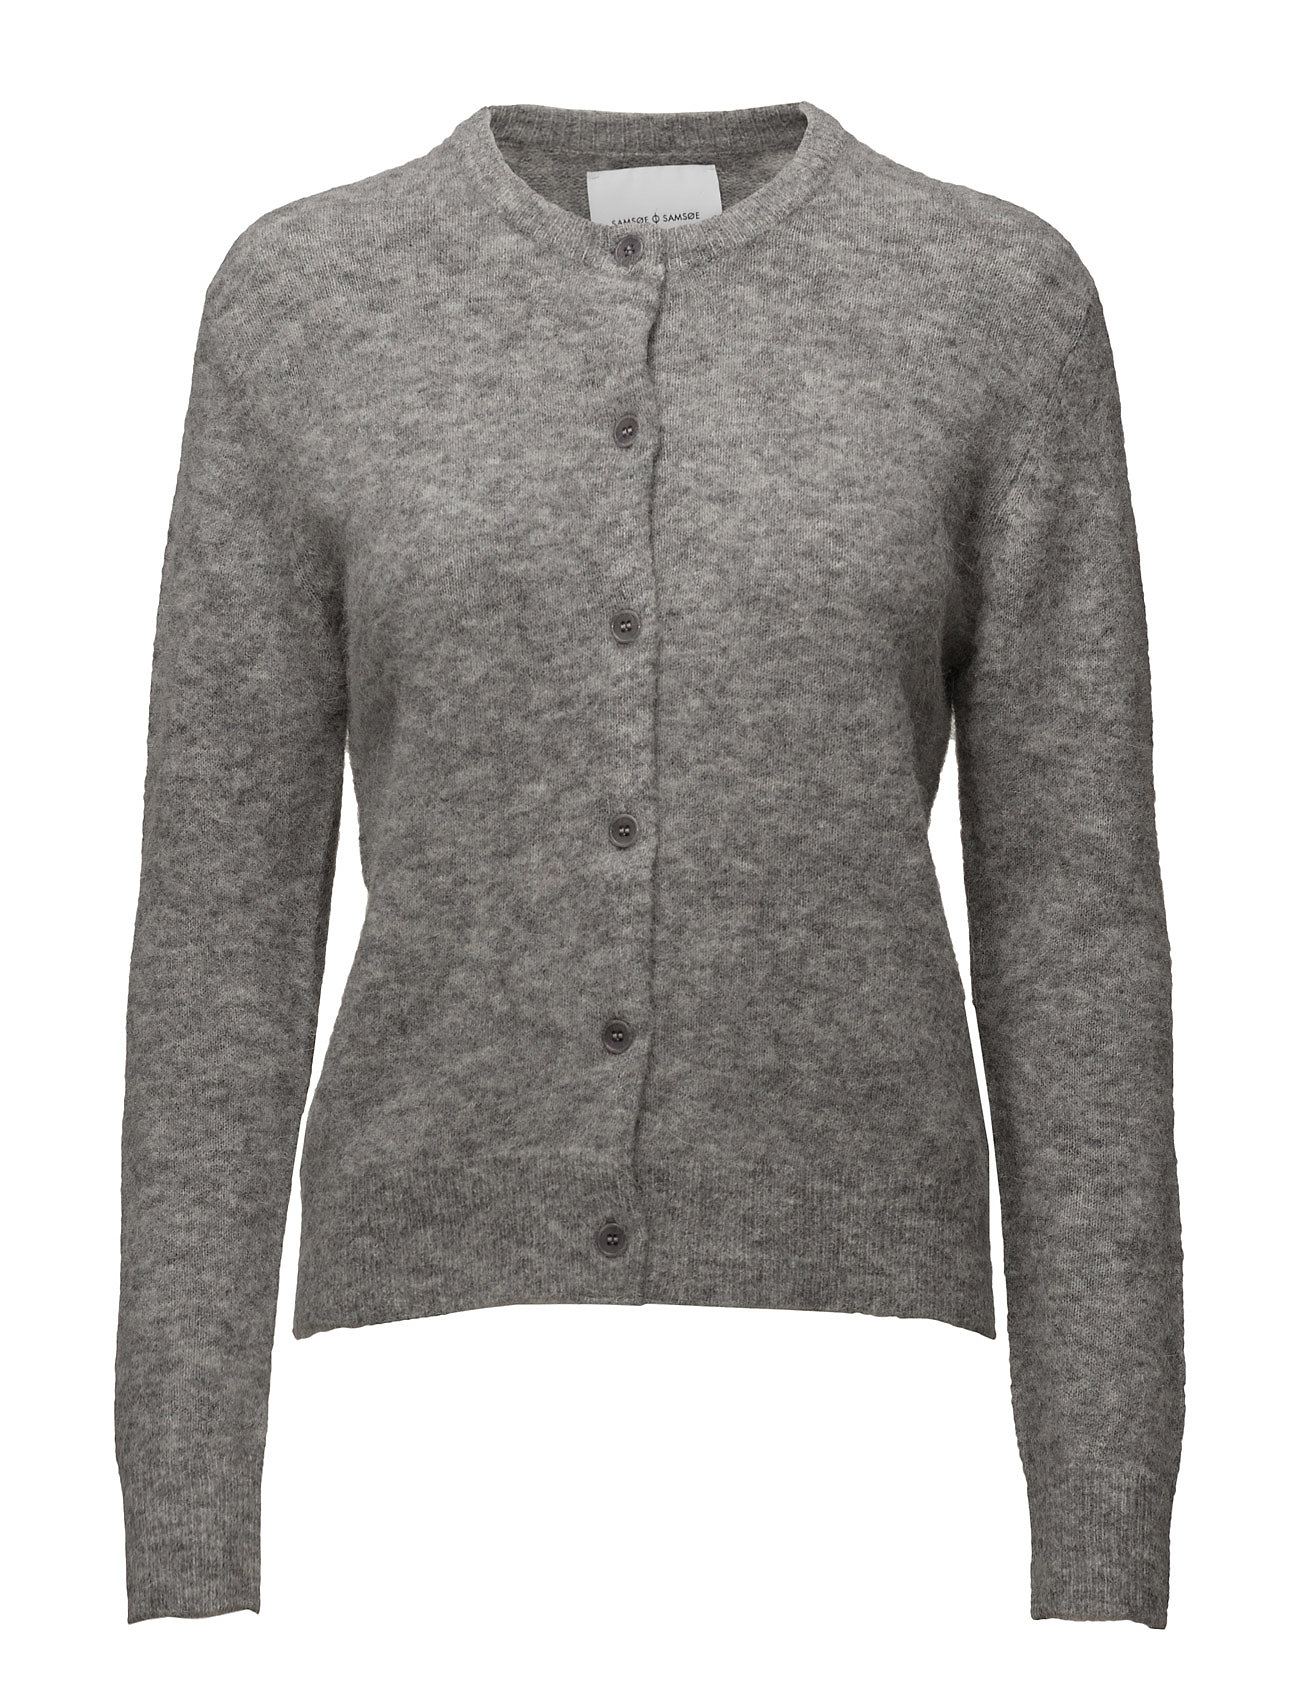 Samsøe & Samsøe Nor short cardigan 7355 - GREY MEL.